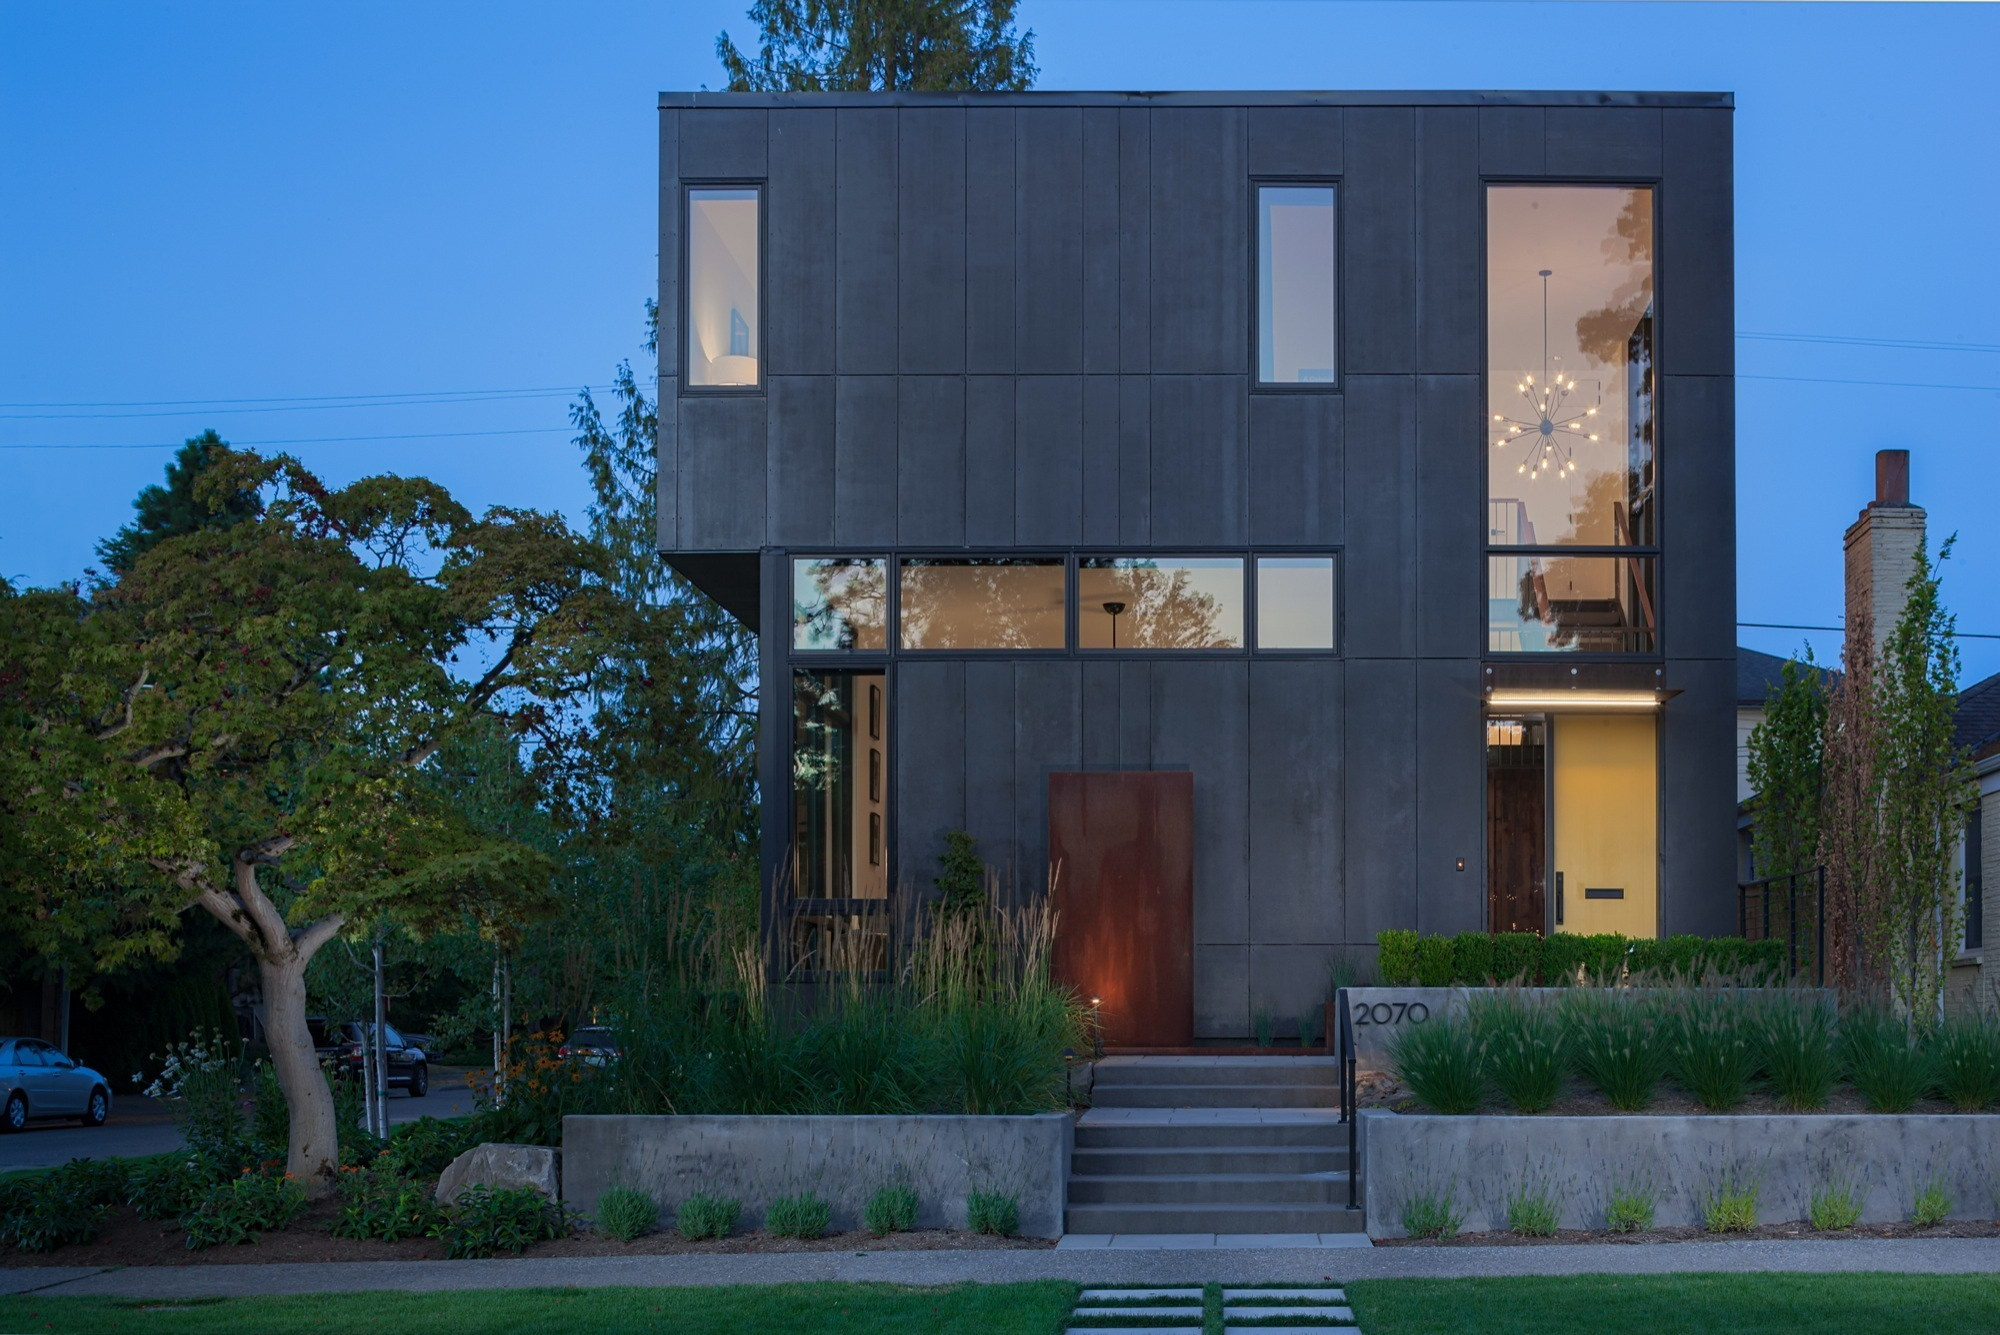 Madison Park Residence by Capsule